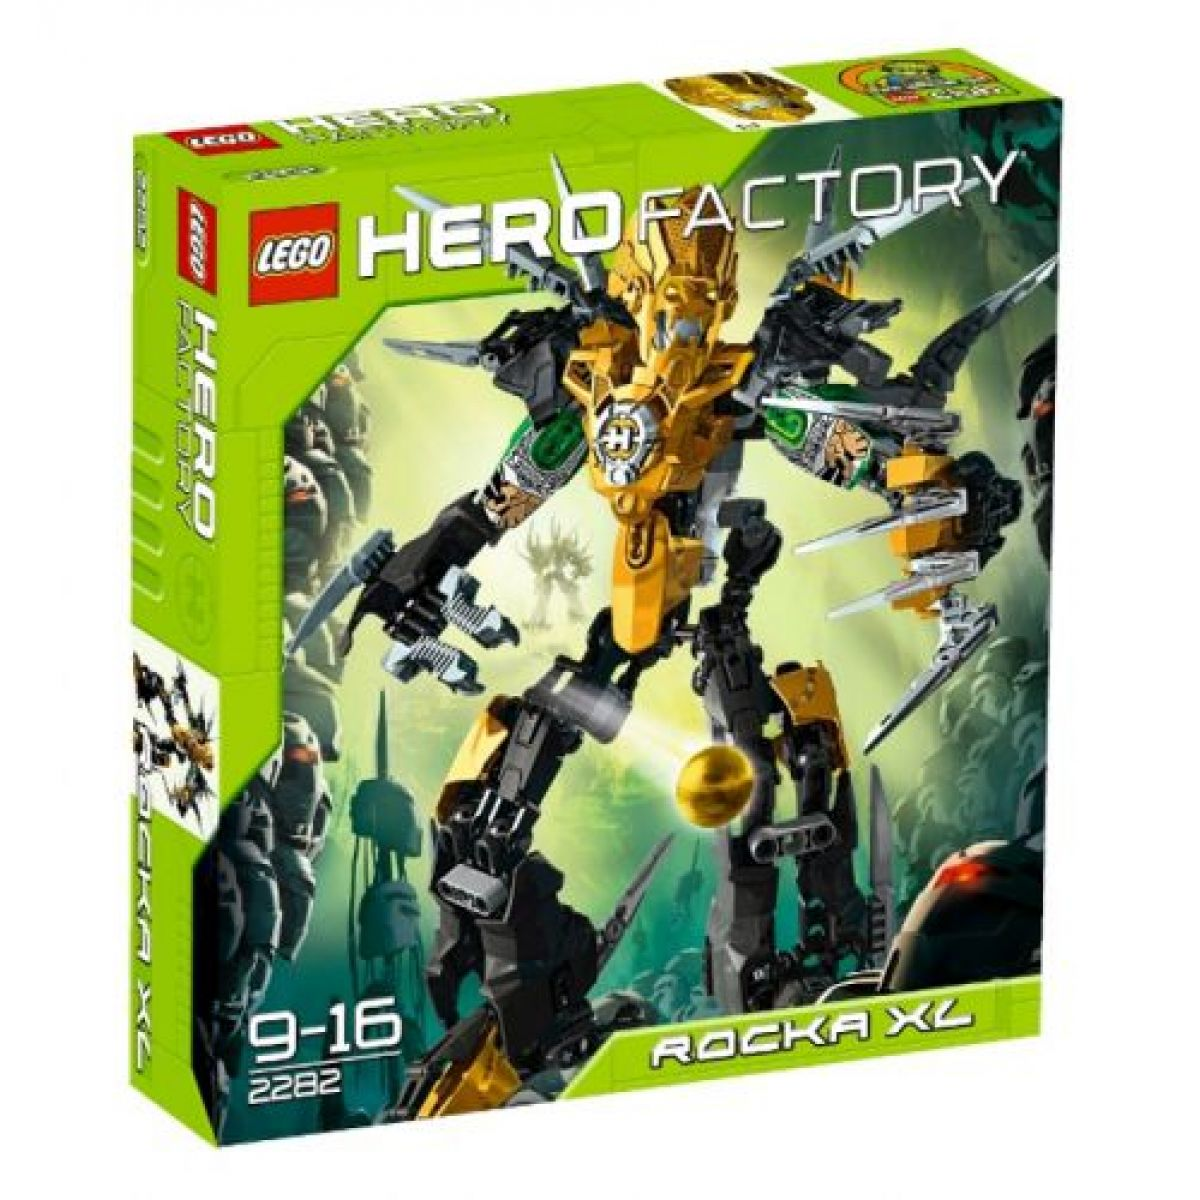 LEGO Hero Factory 2282 Rocka XL